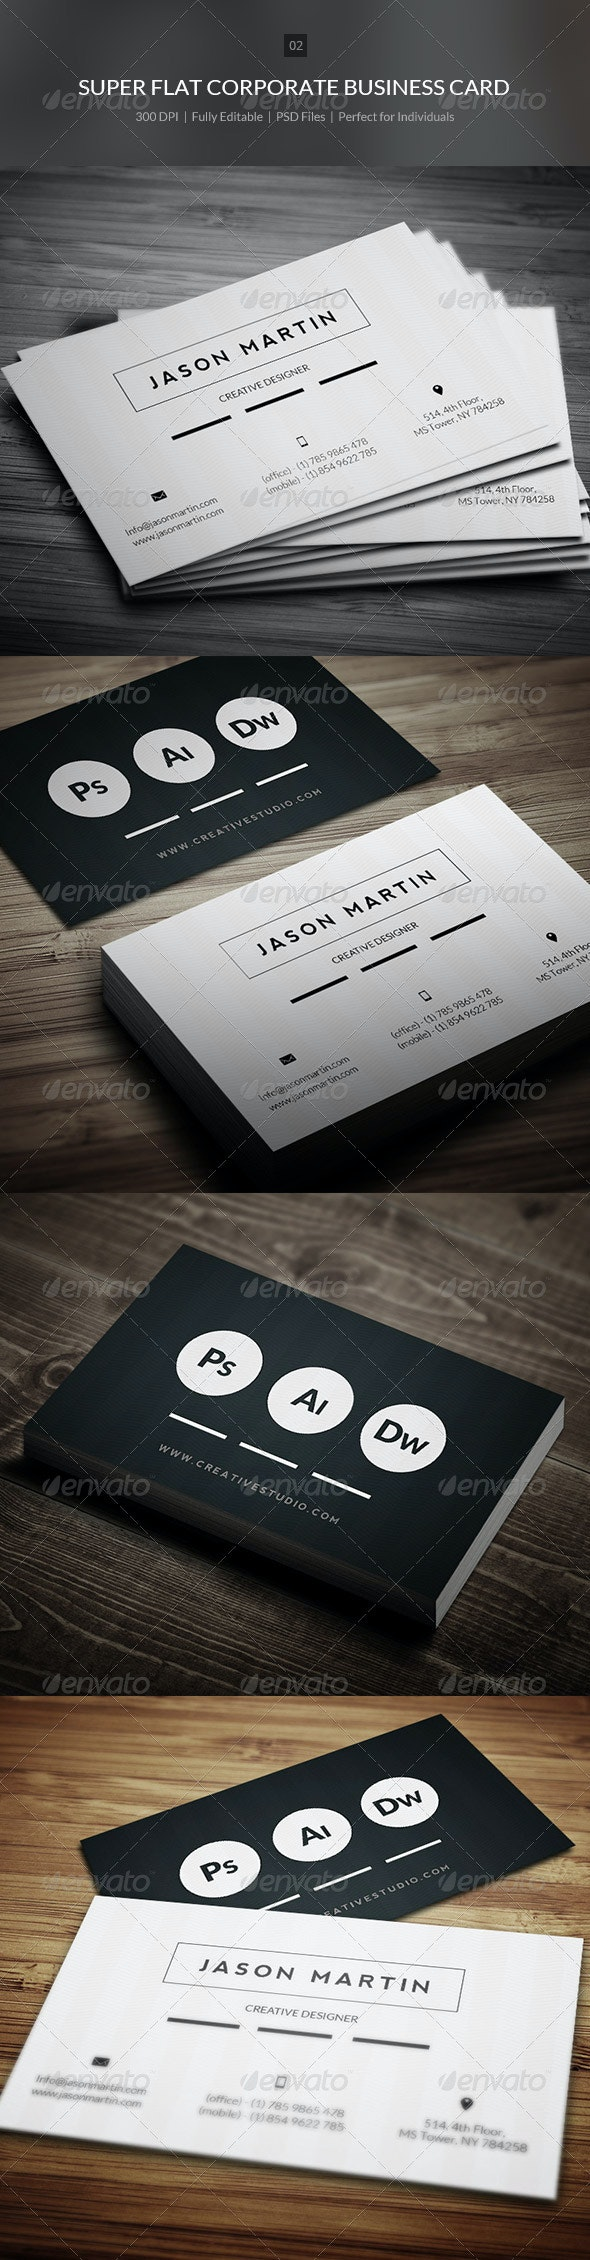 Super Flat Corporate Business Card - 02 - Corporate Business Cards